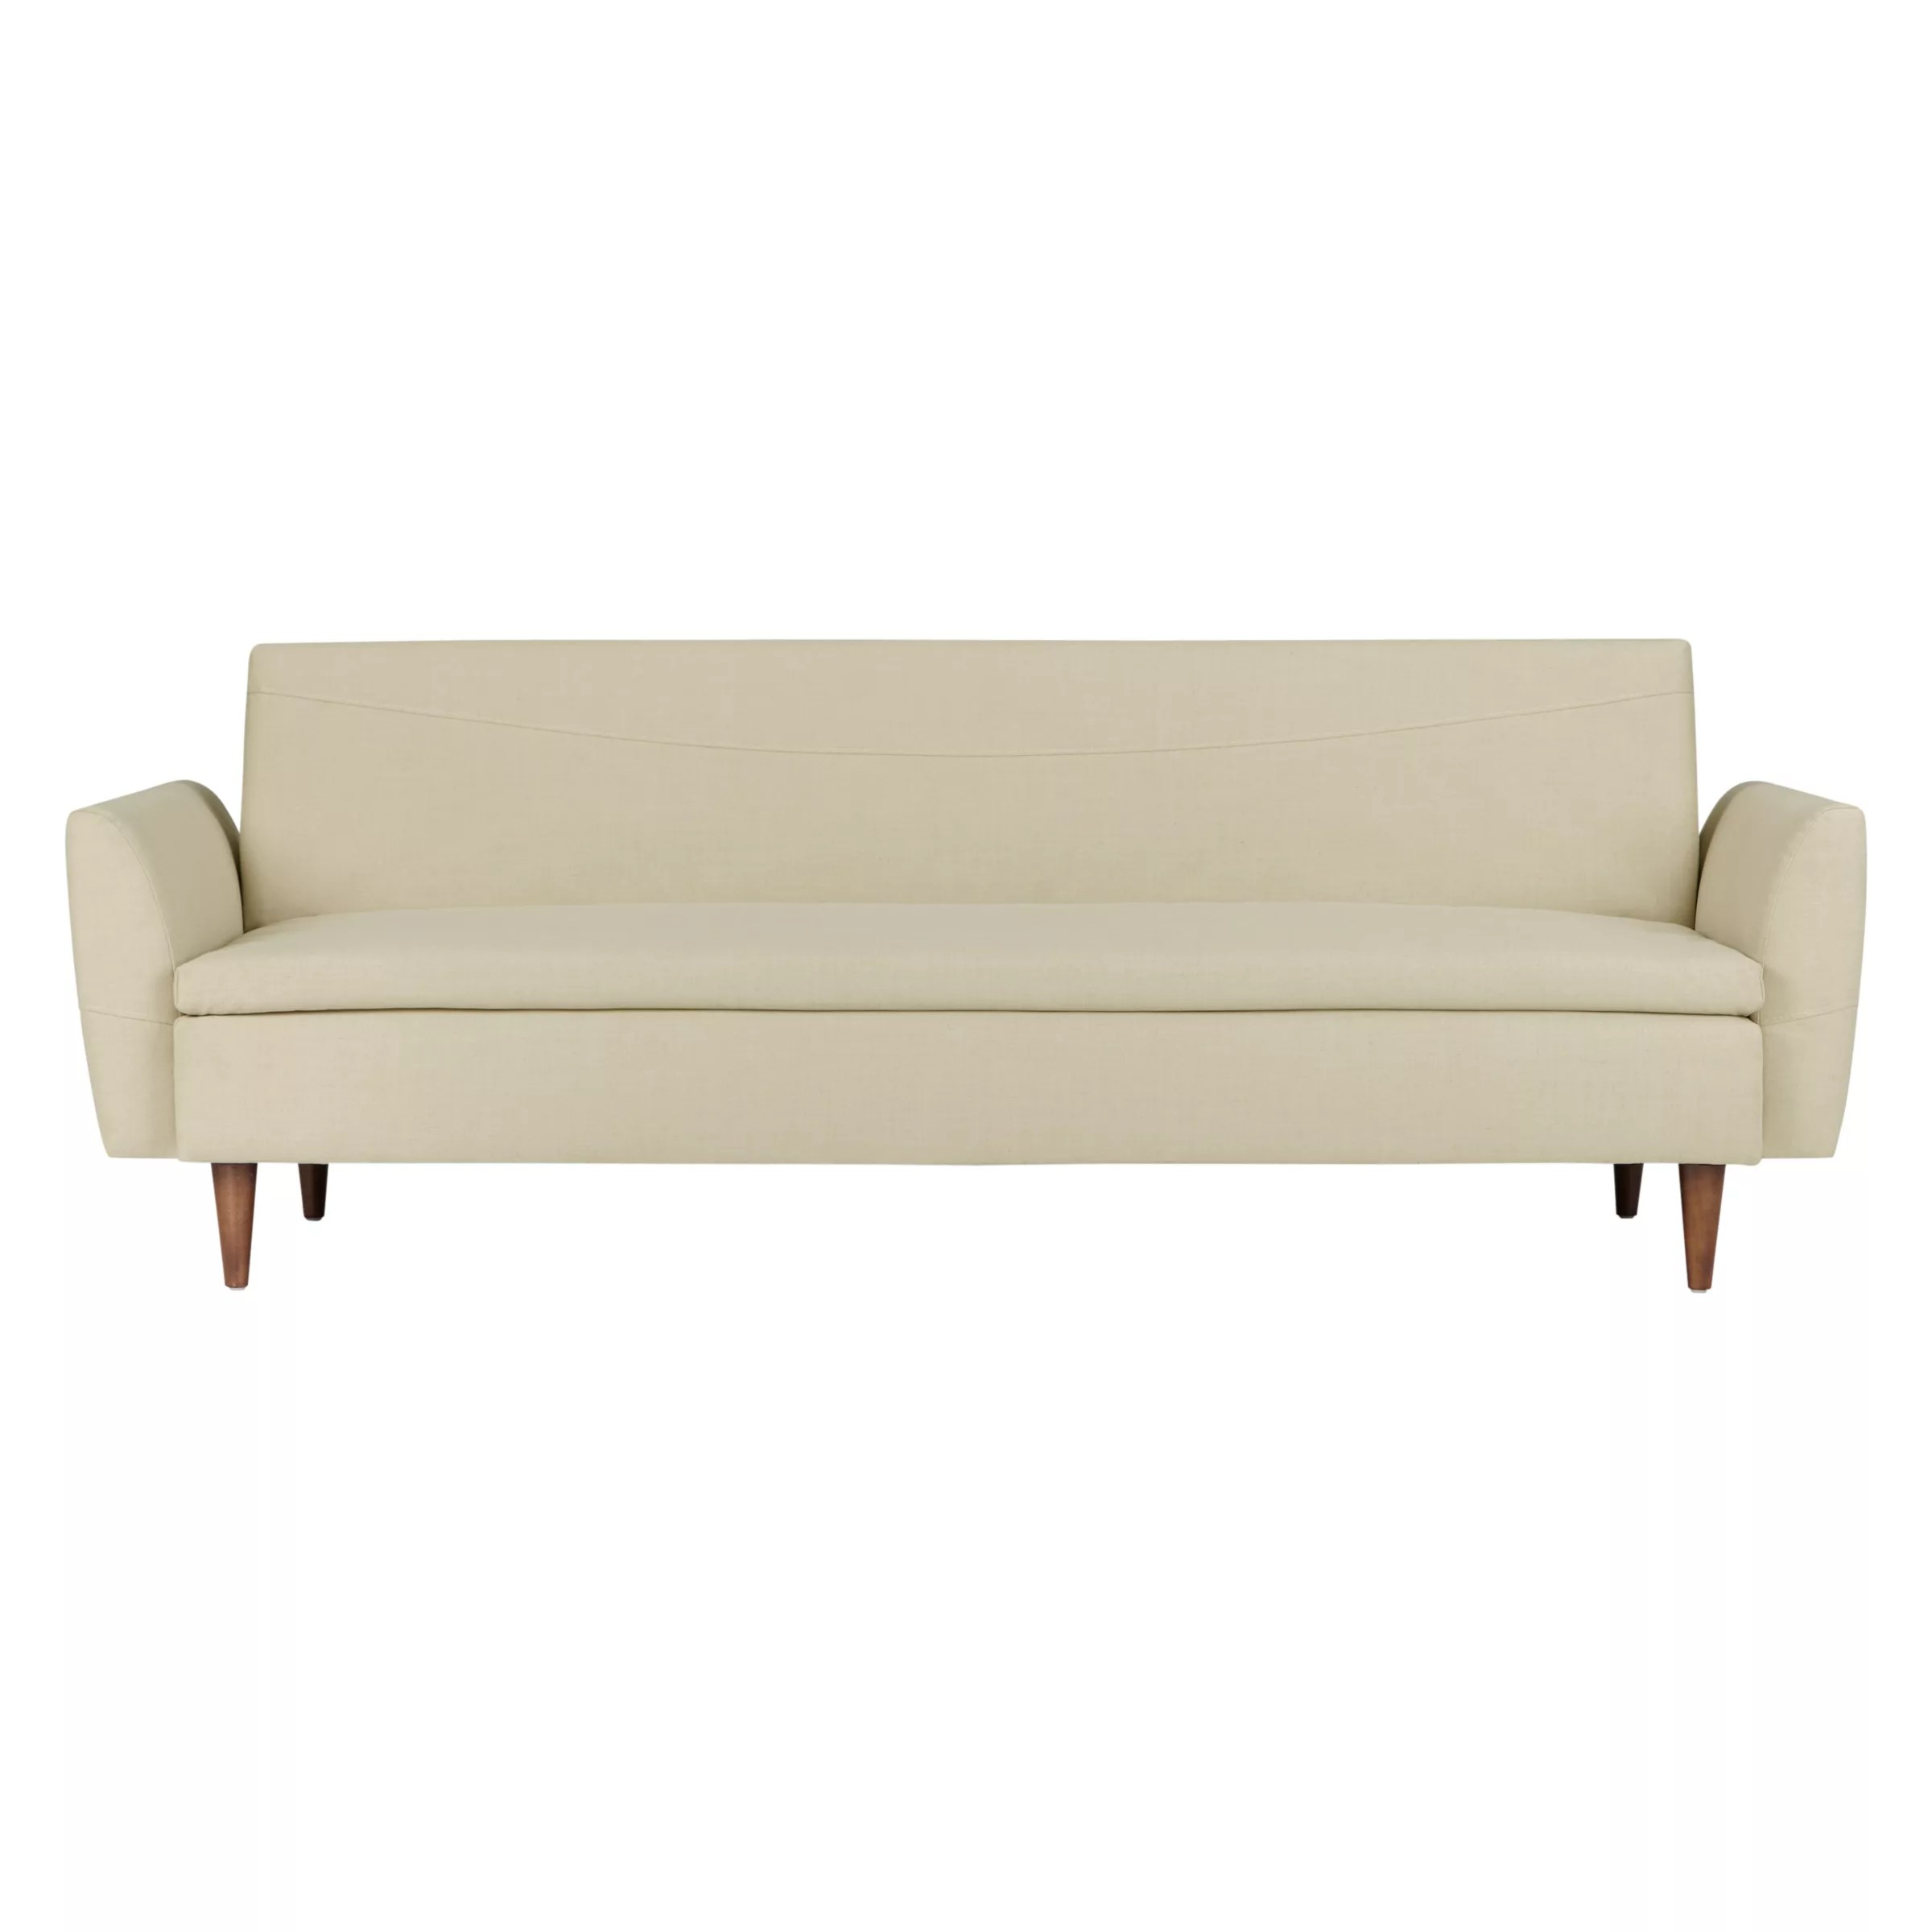 john lewis sofa bed raymour and flanigan recliner leyton at partners buyjohn natural online johnlewis com